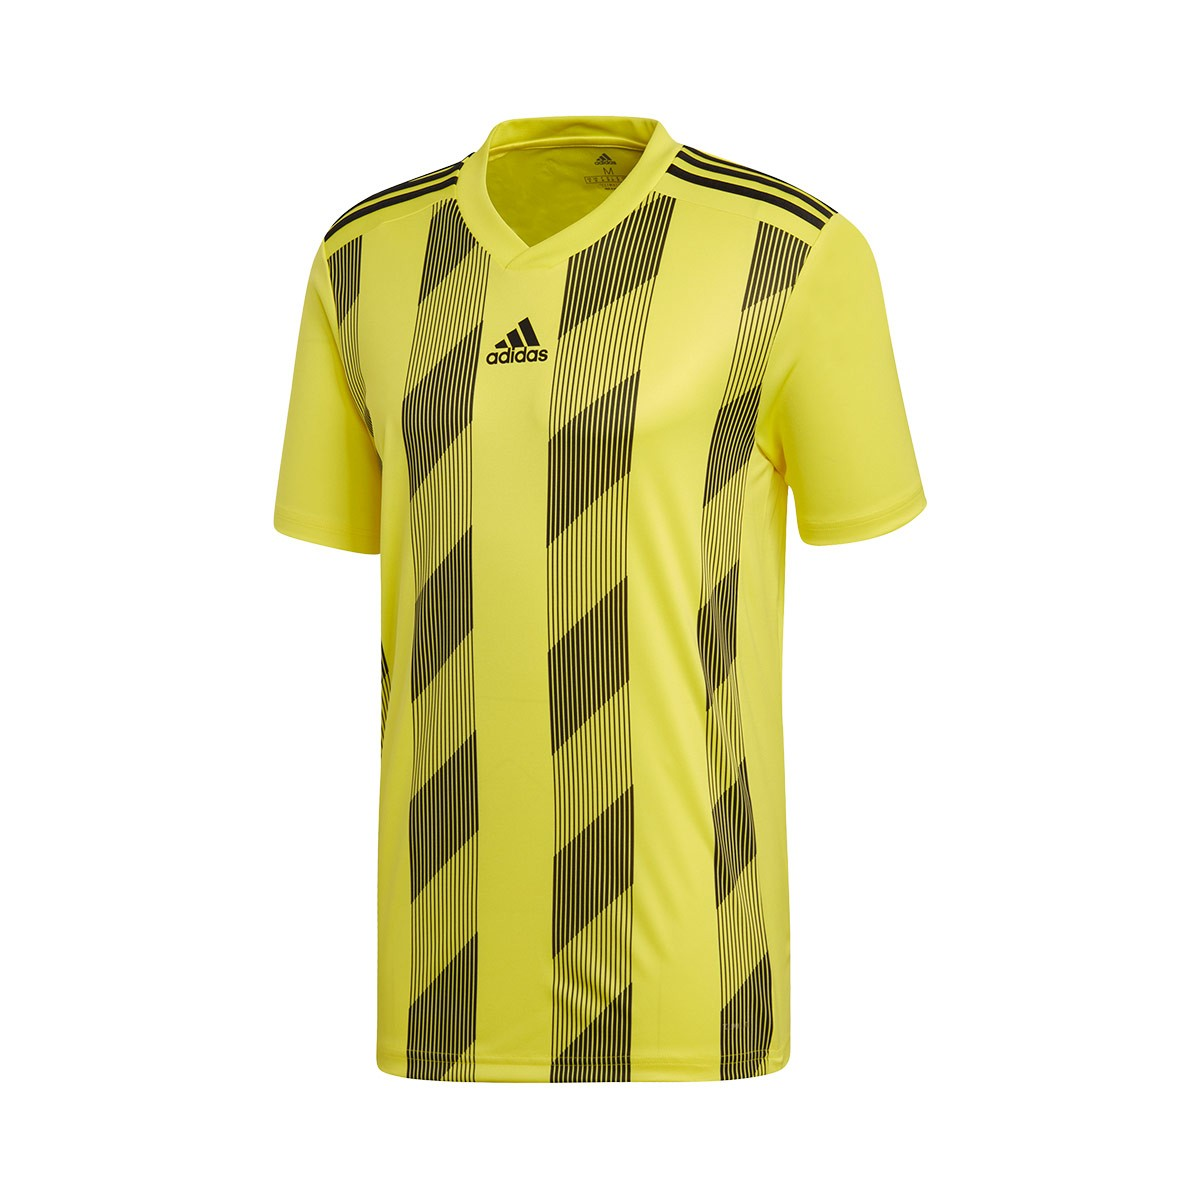 a0098b7d5 Jersey adidas Striped 19 m/c Bright yellow-Black - Football store Fútbol  Emotion